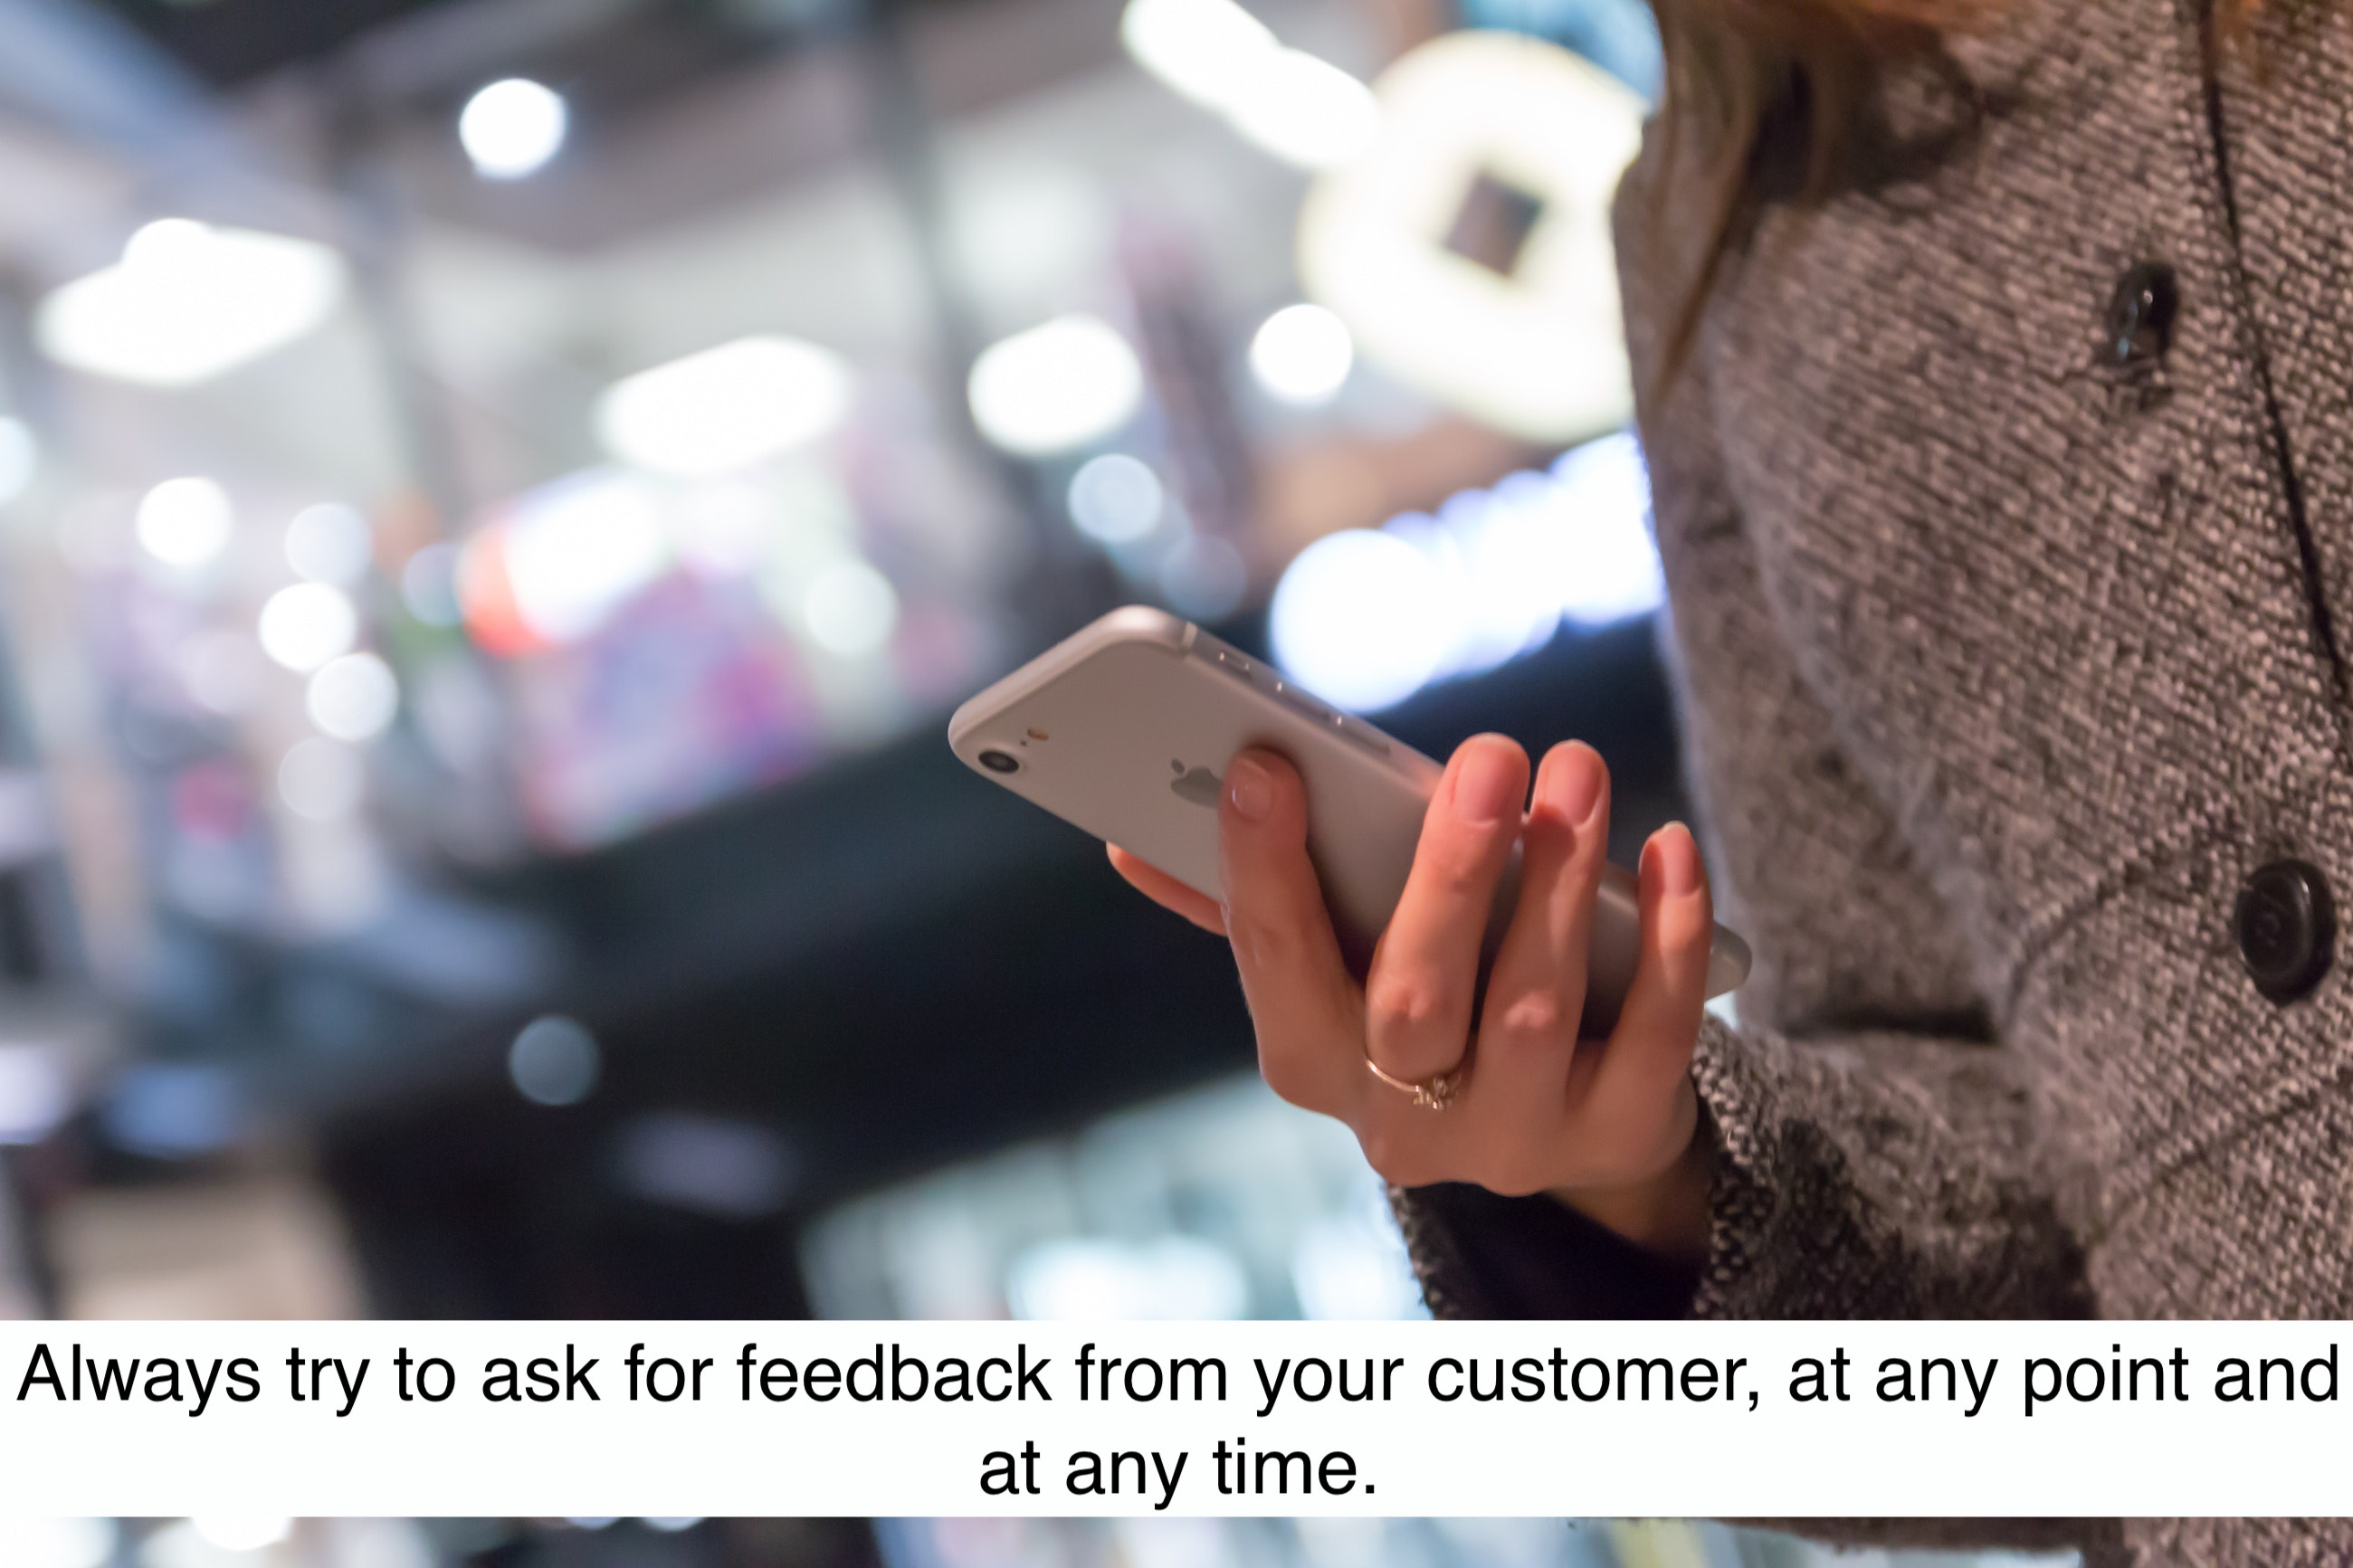 Always try to ask for feedback from your customer, at any point and any time.